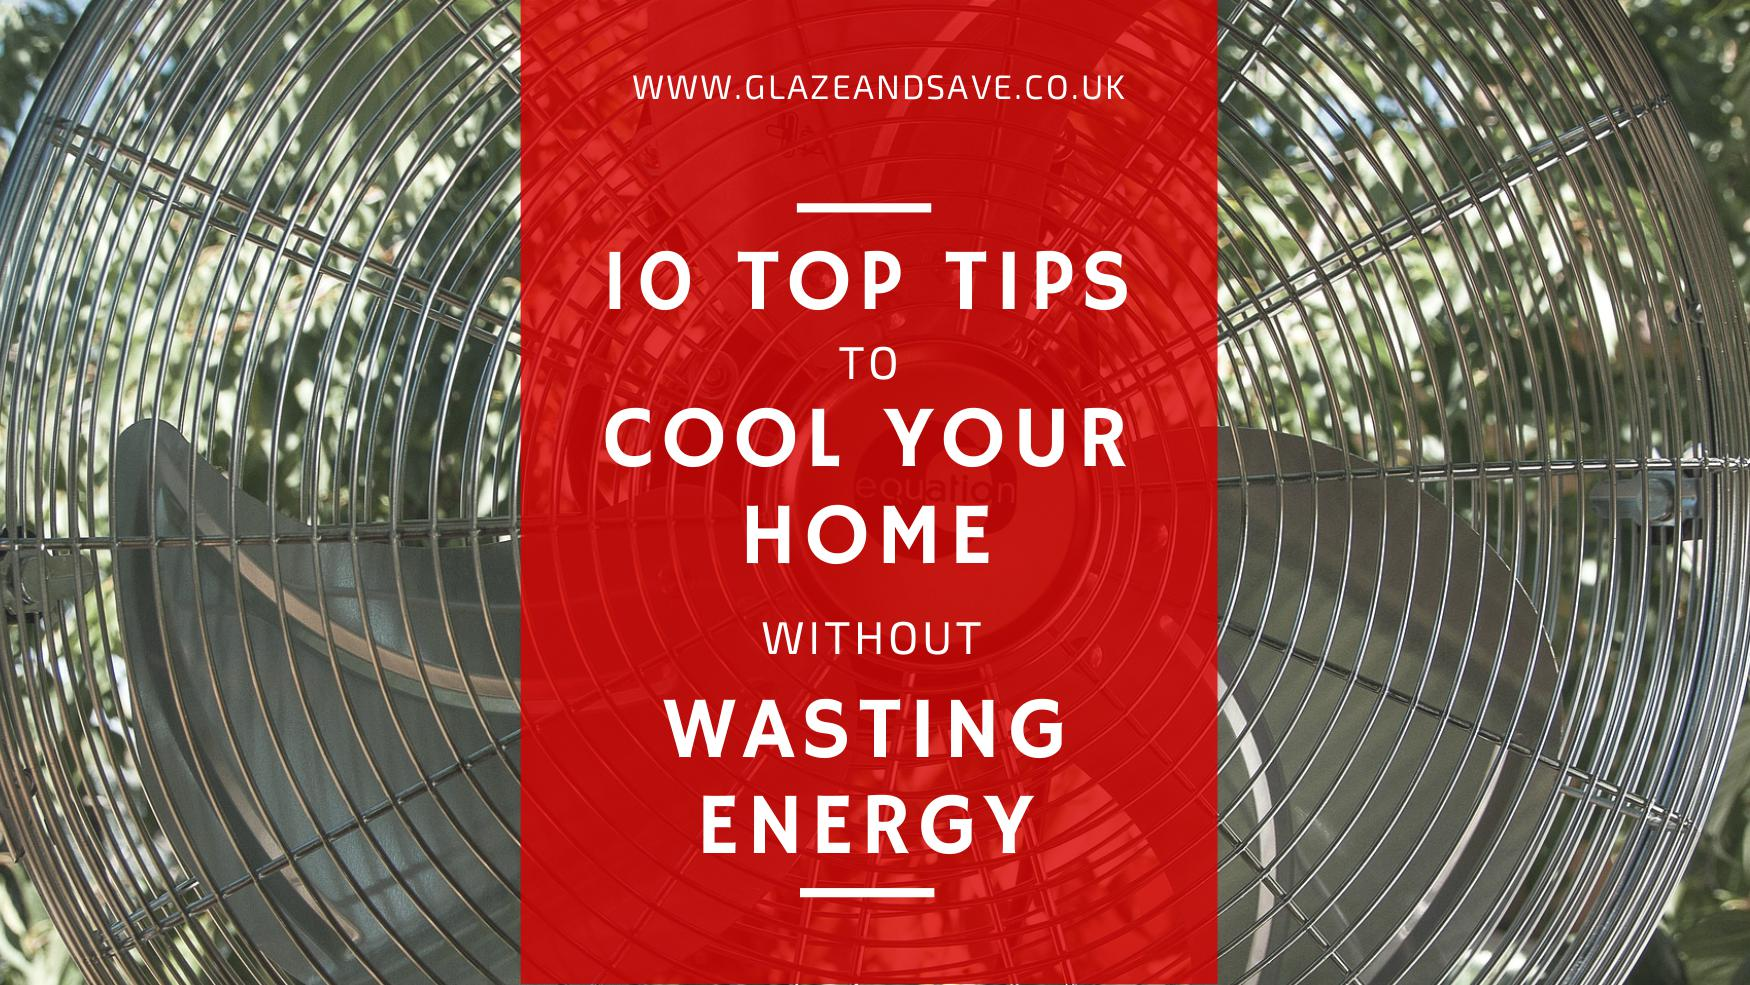 Ten top tips to cool your home without wasting energy by Glaze & Save bespoke magnetic secondary glazing, draught proofing and window films based in Perth, Scotland. Make your home more energy efficient, reduce noise and reduce energy bills.